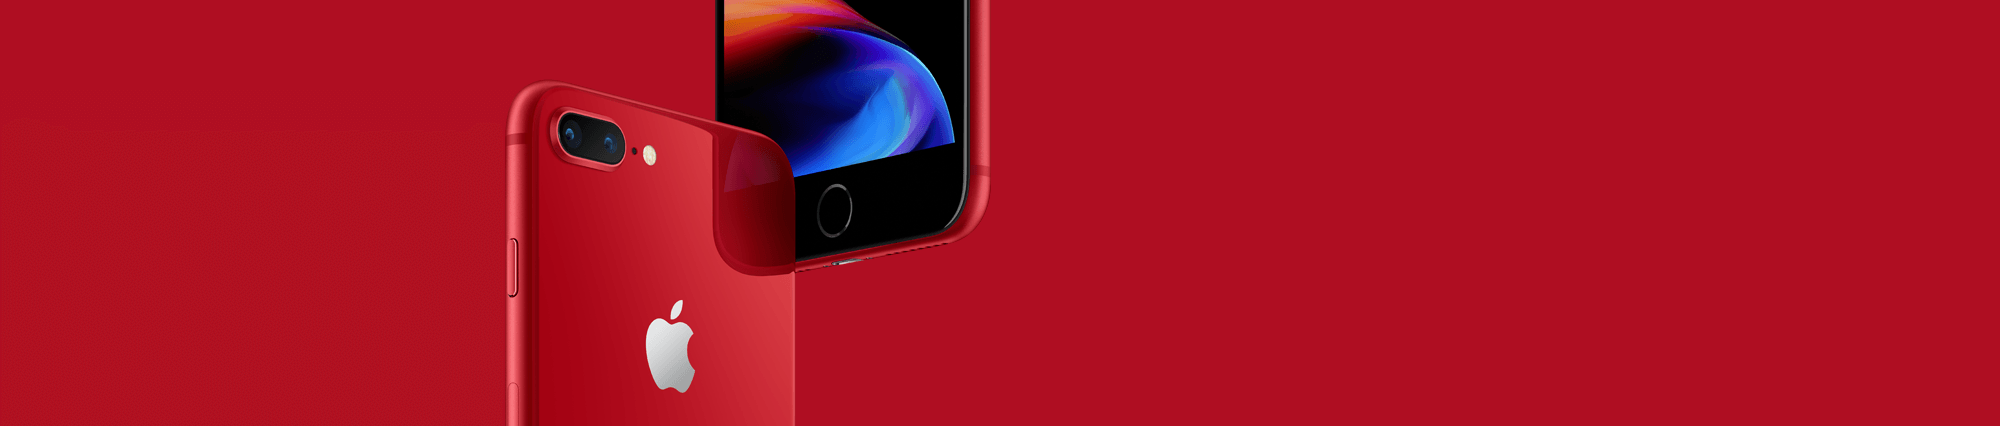 slider-iphone8RED.png